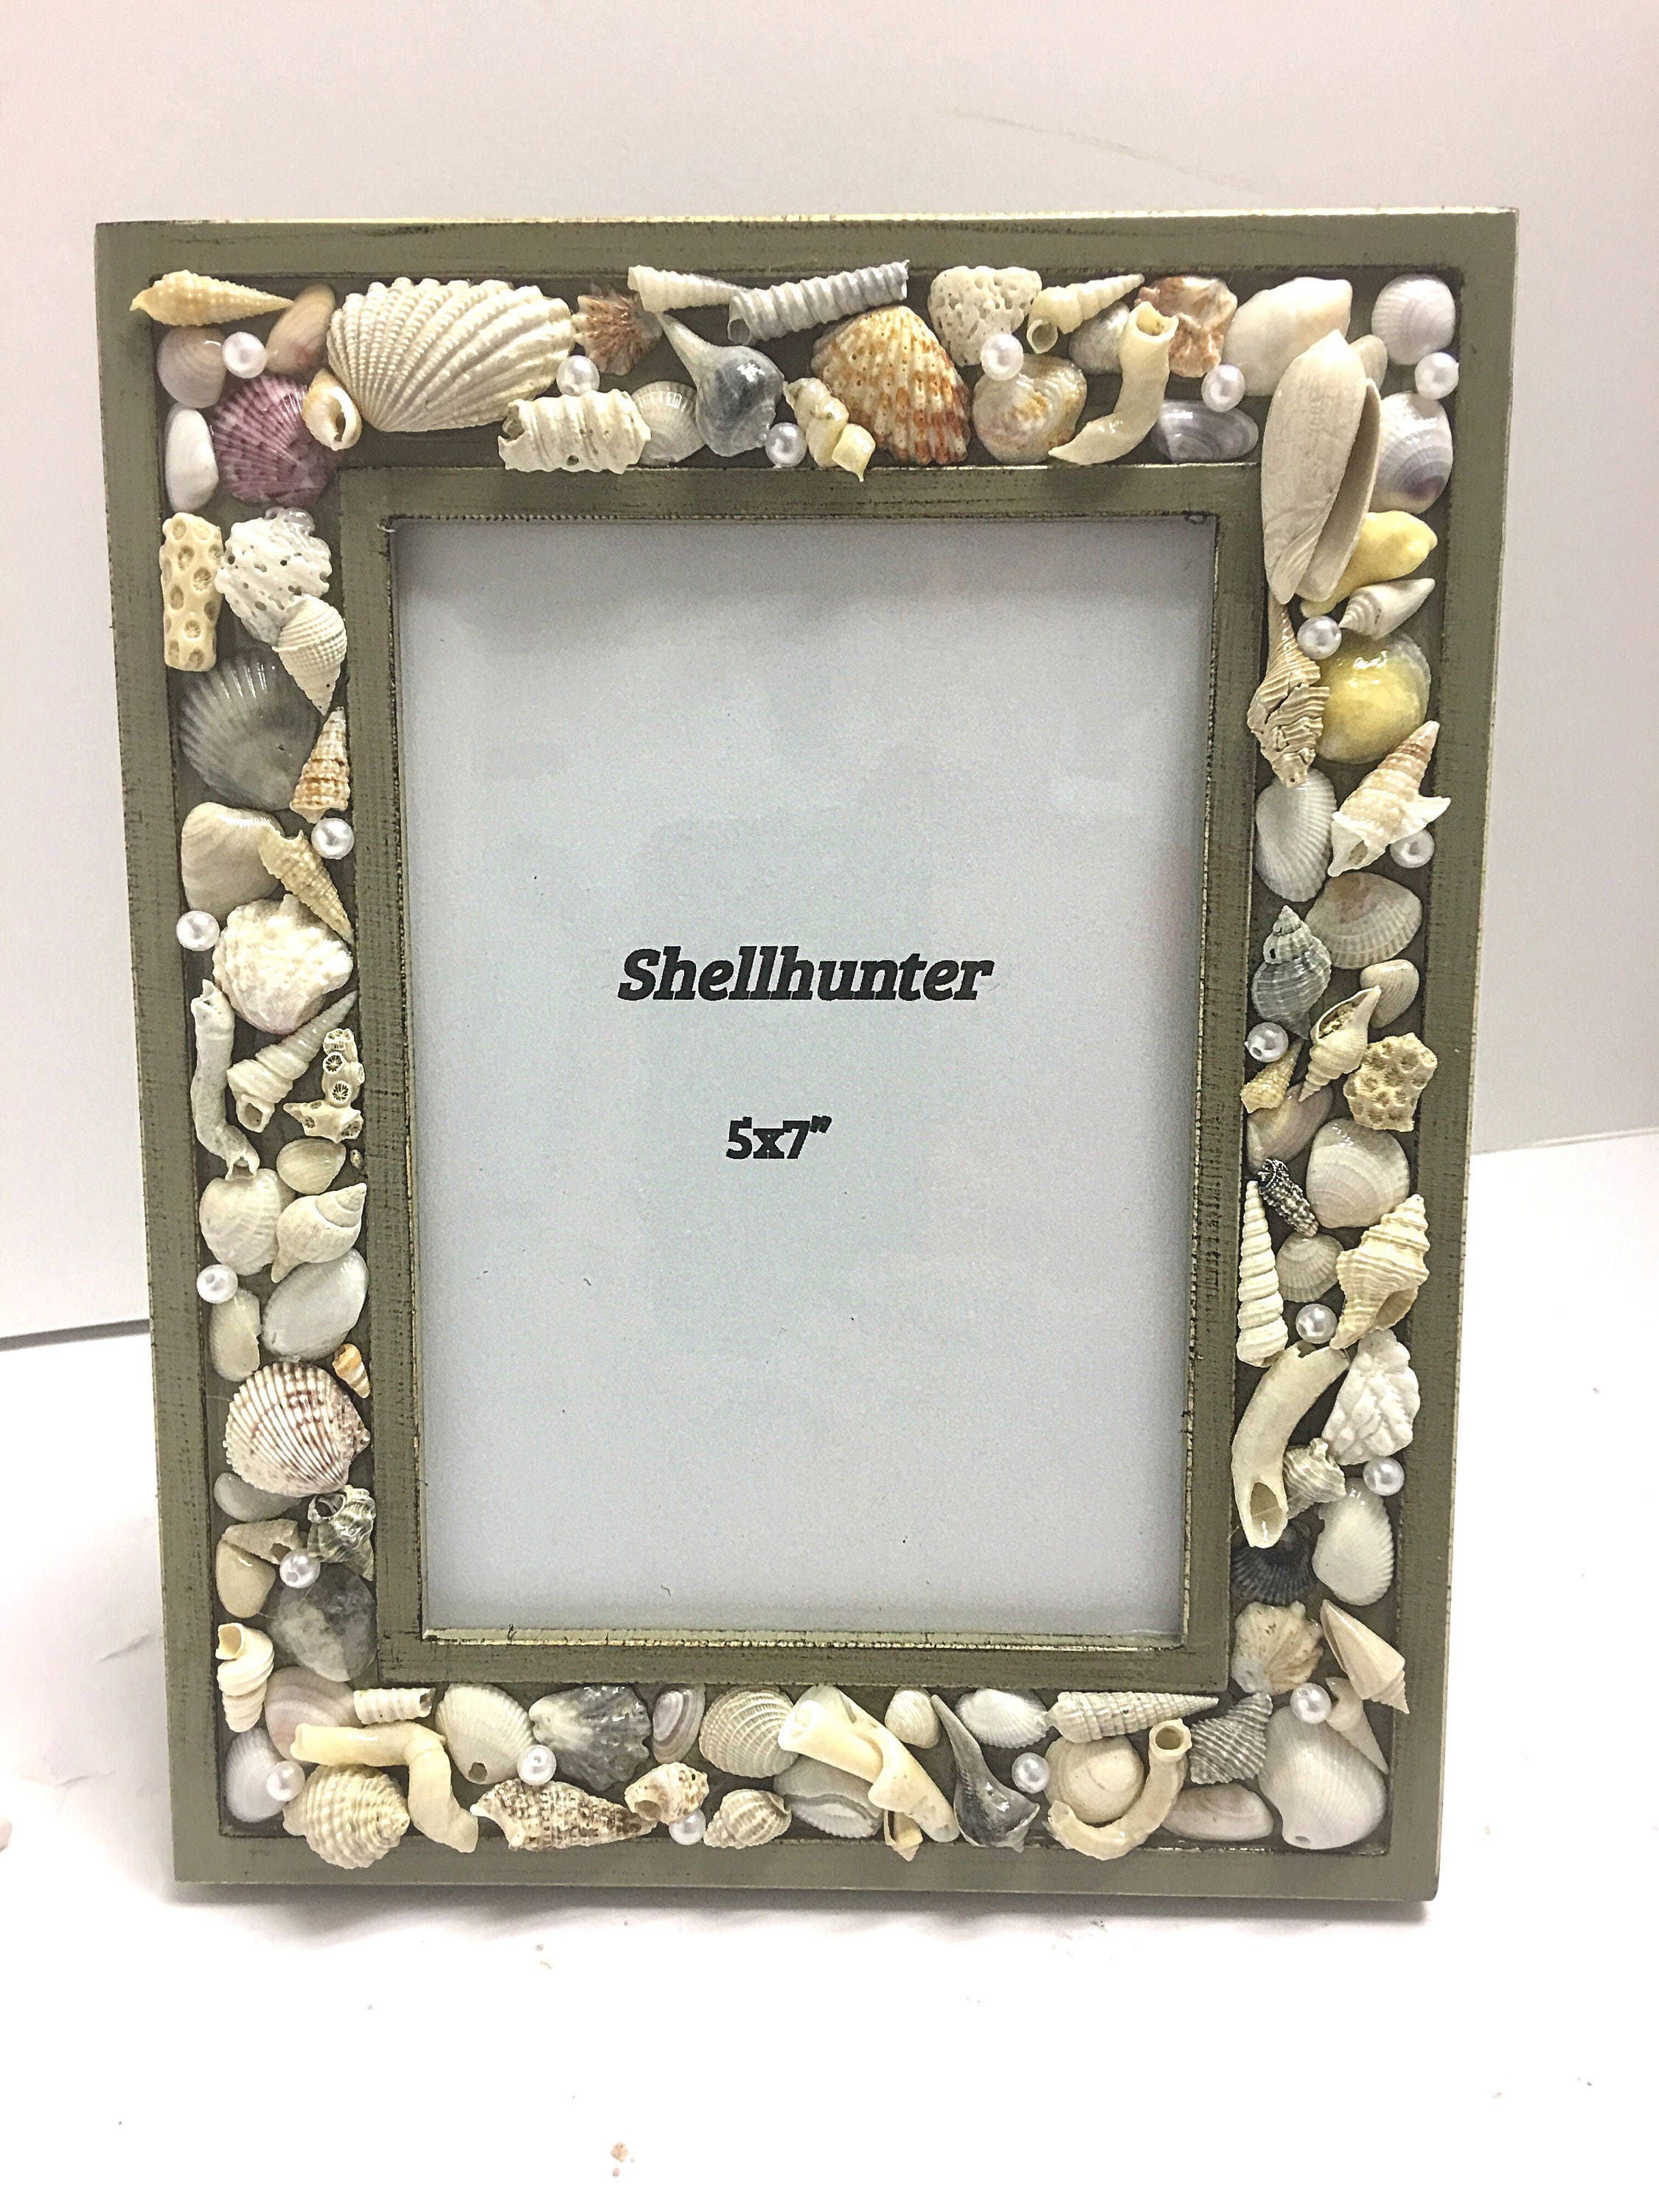 Beach frame 5 by 7 photo frame in olive green with seashells and beach frame 5 by 7 photo frame in olive green with seashells and pearl accents sturdy and made in usa jeuxipadfo Image collections